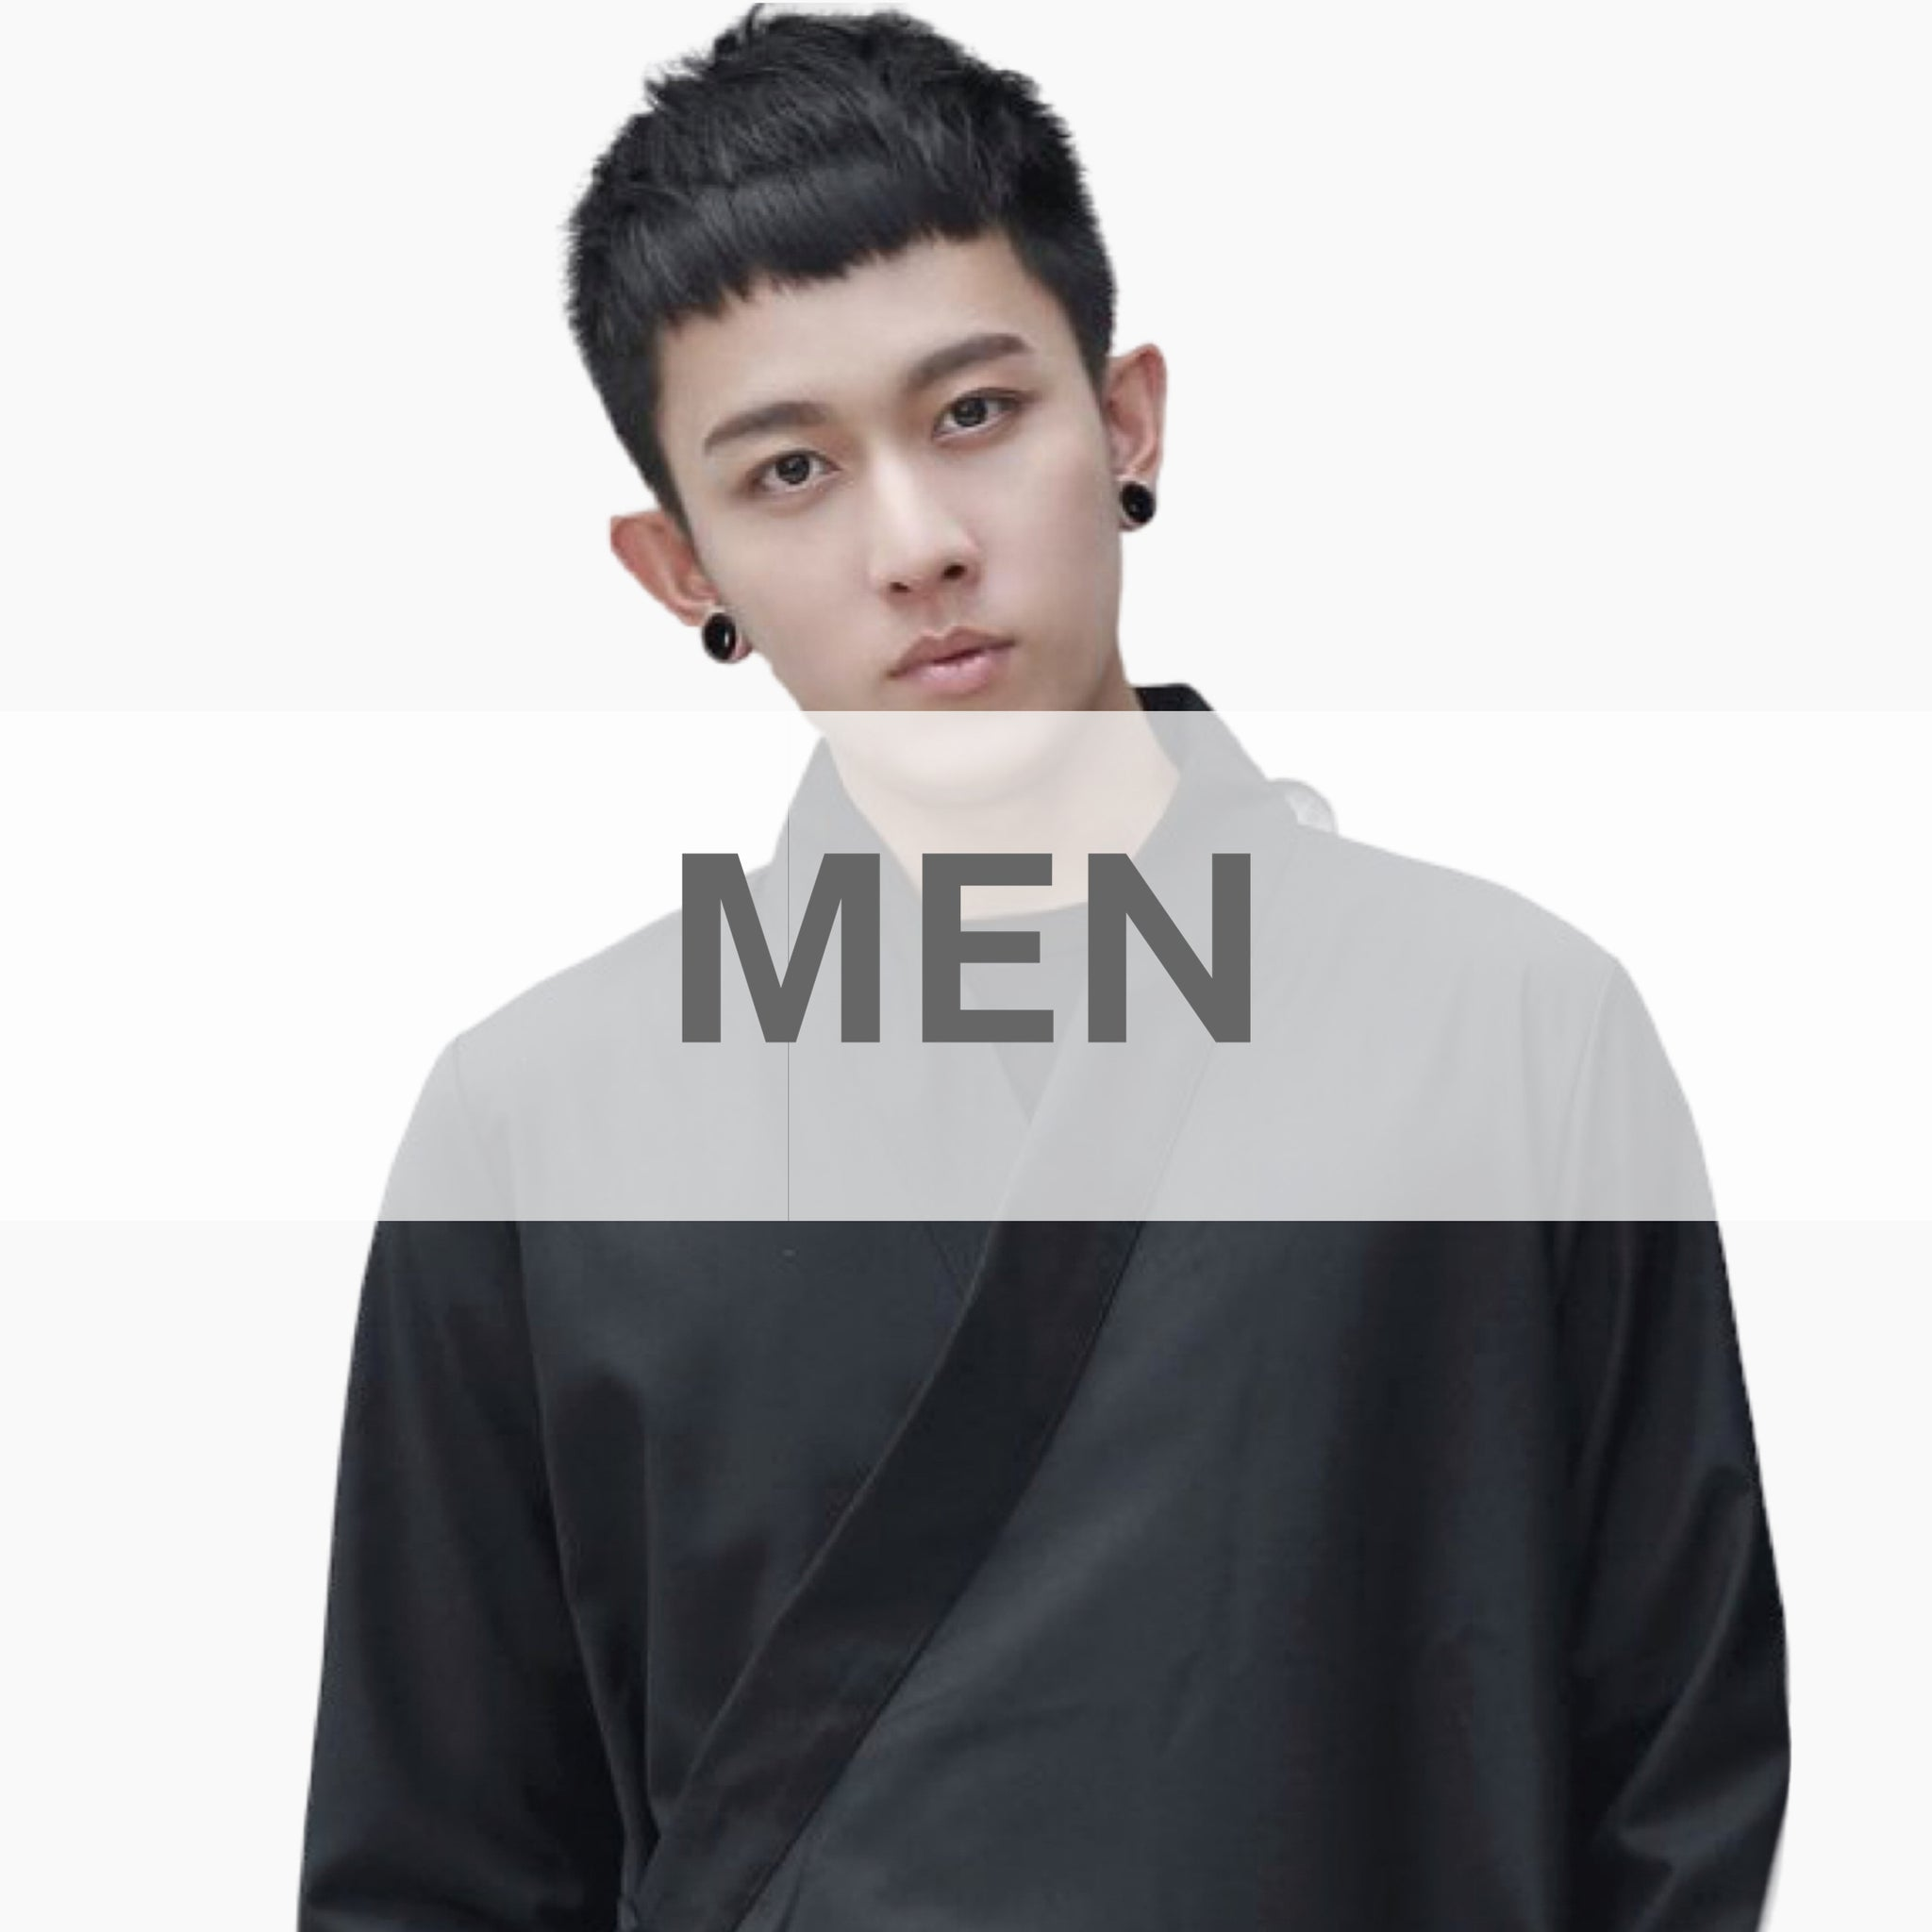 miTeigi | Men Apparel | Japanese Apparel and Home Decor Retail Shopping